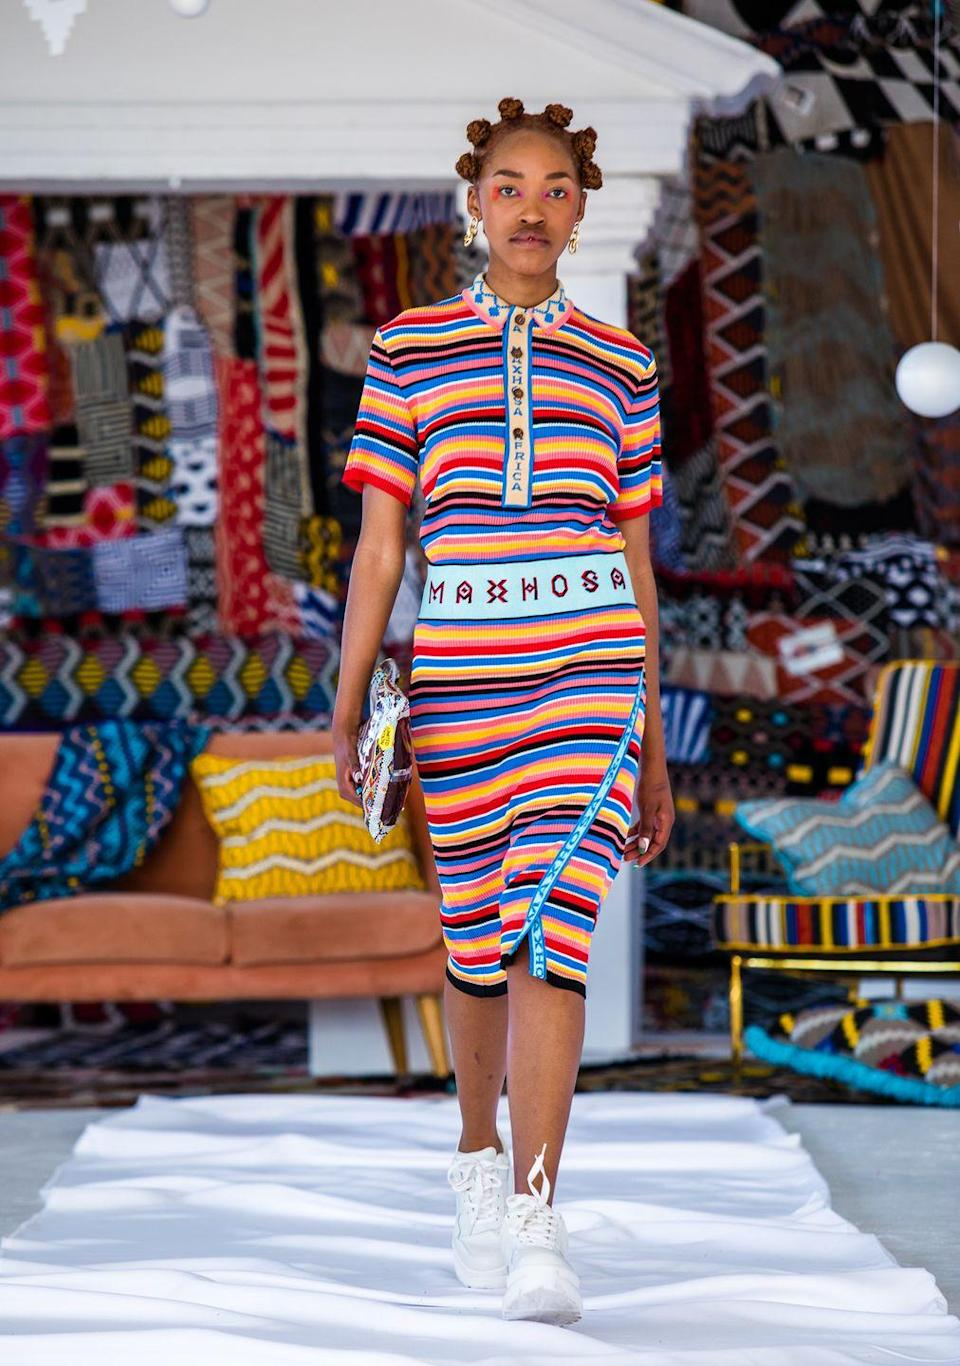 """<p>Though 10 years in business and with fans that includes Beyoncé's stylist, Zerina Akers, Maxhosa Africa has mostly flown under the radar. But with his spring 2021 collection, South African designer Laduma Ngxokolo intends to get his vision across loud and clear. """"In the midst of sadness, it is very important to give people hope,"""" Ngxokolo said at the end of a runway video that was prerecorded in Capetown. """"Happiness is a new luxury."""" The collection, dubbed <em>Ingumangaliso Imisebenzi Ka Thixo</em> (which translates to """"God's Work Is Miraculous""""), Xhosa, manifested this sentiment via vibrant colors, rich knit fabrics, and playful patterns. From column dresses to crop tops paired with bodycon skirts to relaxed, yet refined suits, Ngxokolo transformed wardrobe staples into eye-catching looks that celebrated triumph over darkness. <em>—Barry Samaha</em></p>"""